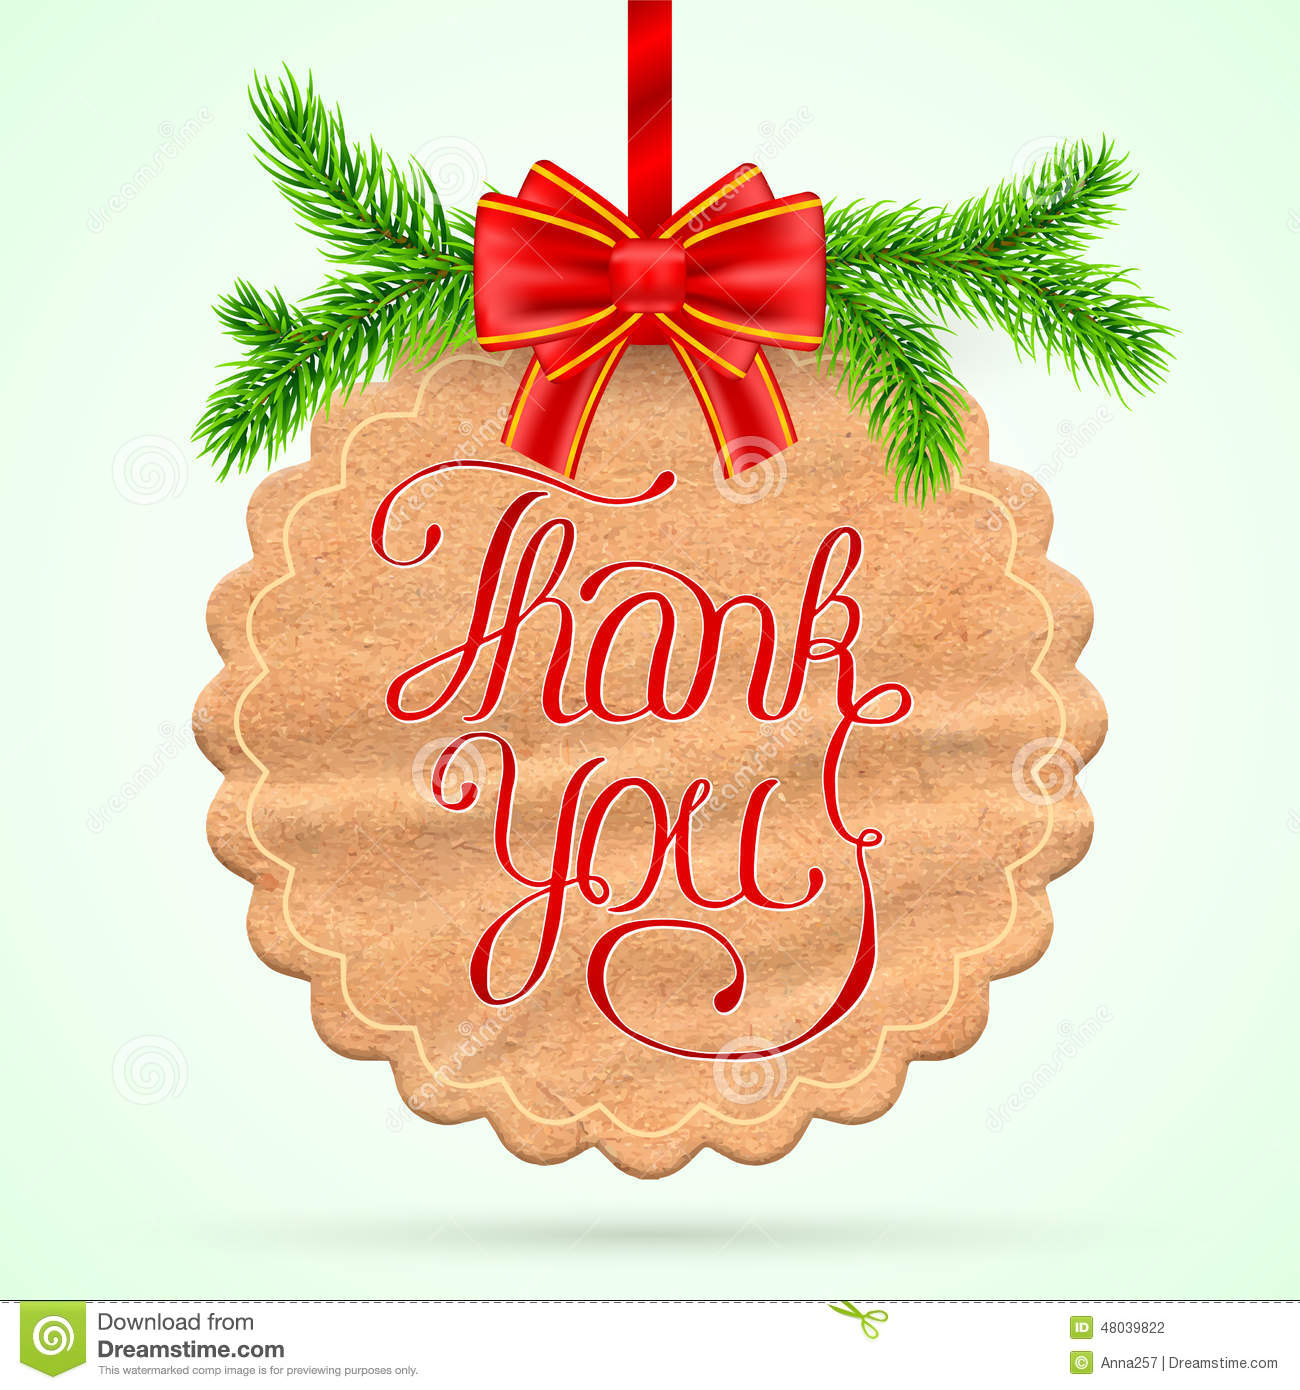 Christmas Thank you card stock vector. Illustration of line - 48039822